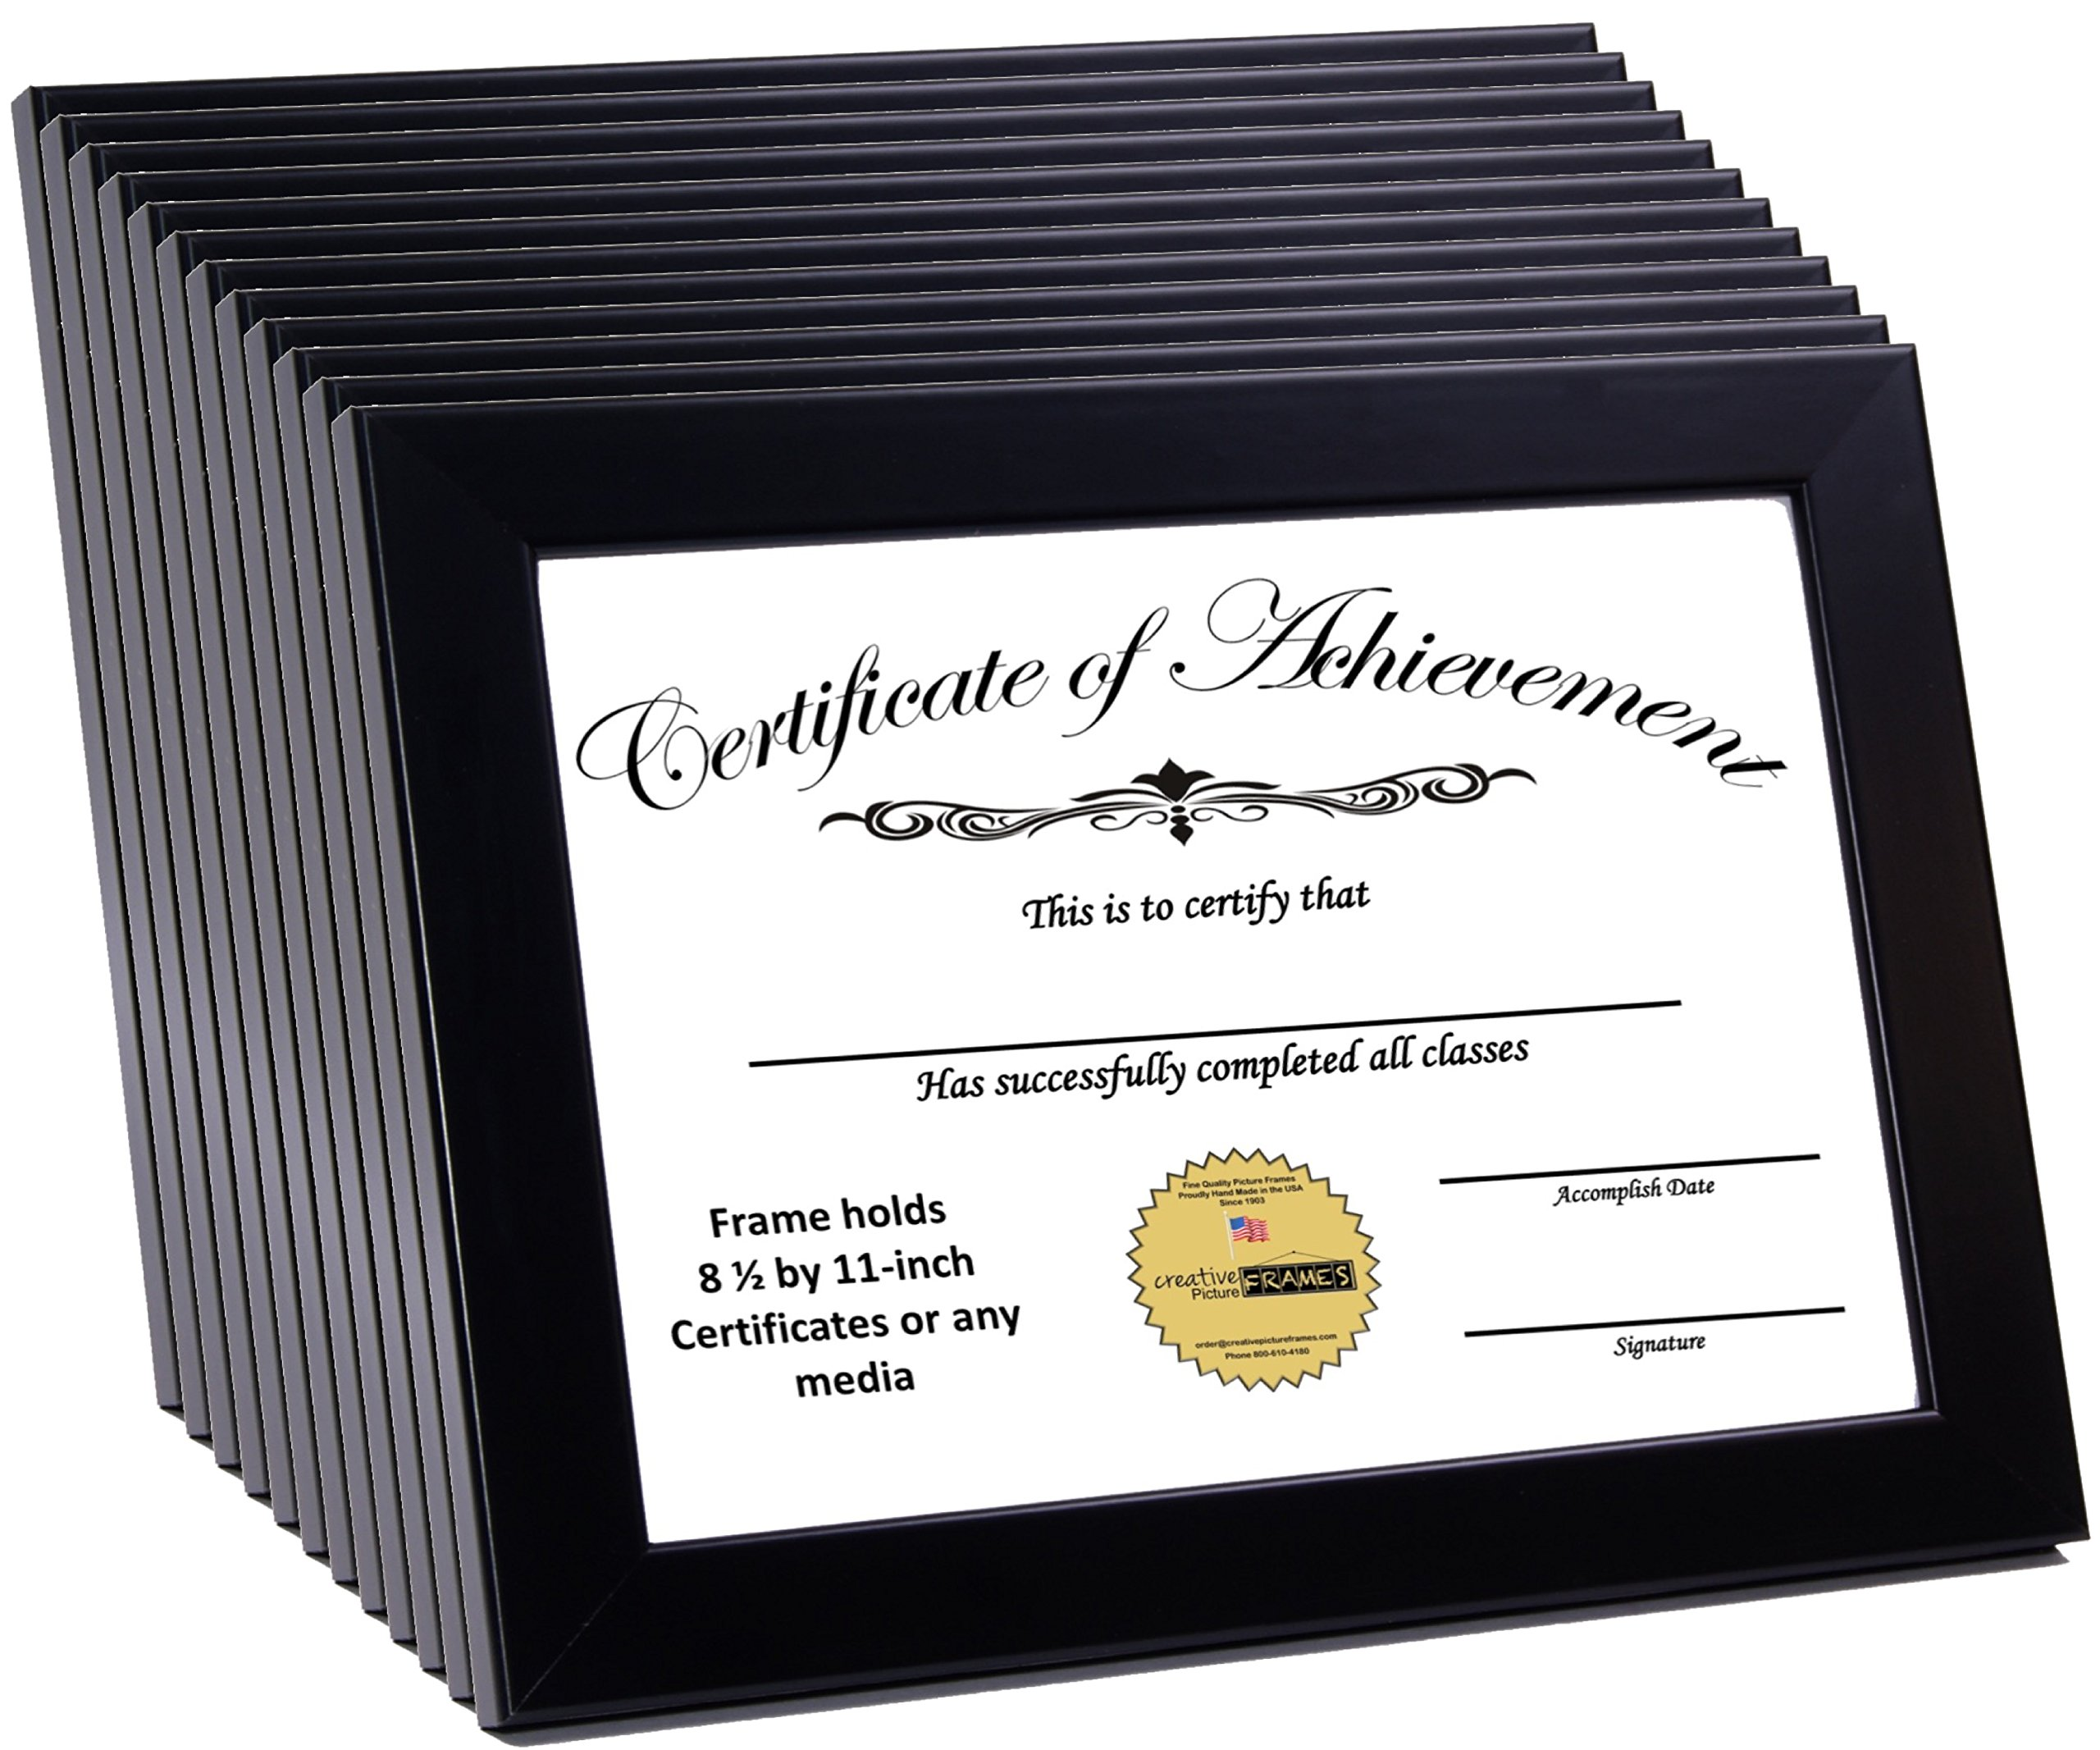 CreativePF [8.5x11bk] Black Document Frame Displays 8.5 by 11-inch Certificate, Graduation, University, Diploma Frames by Creative Picture Frames